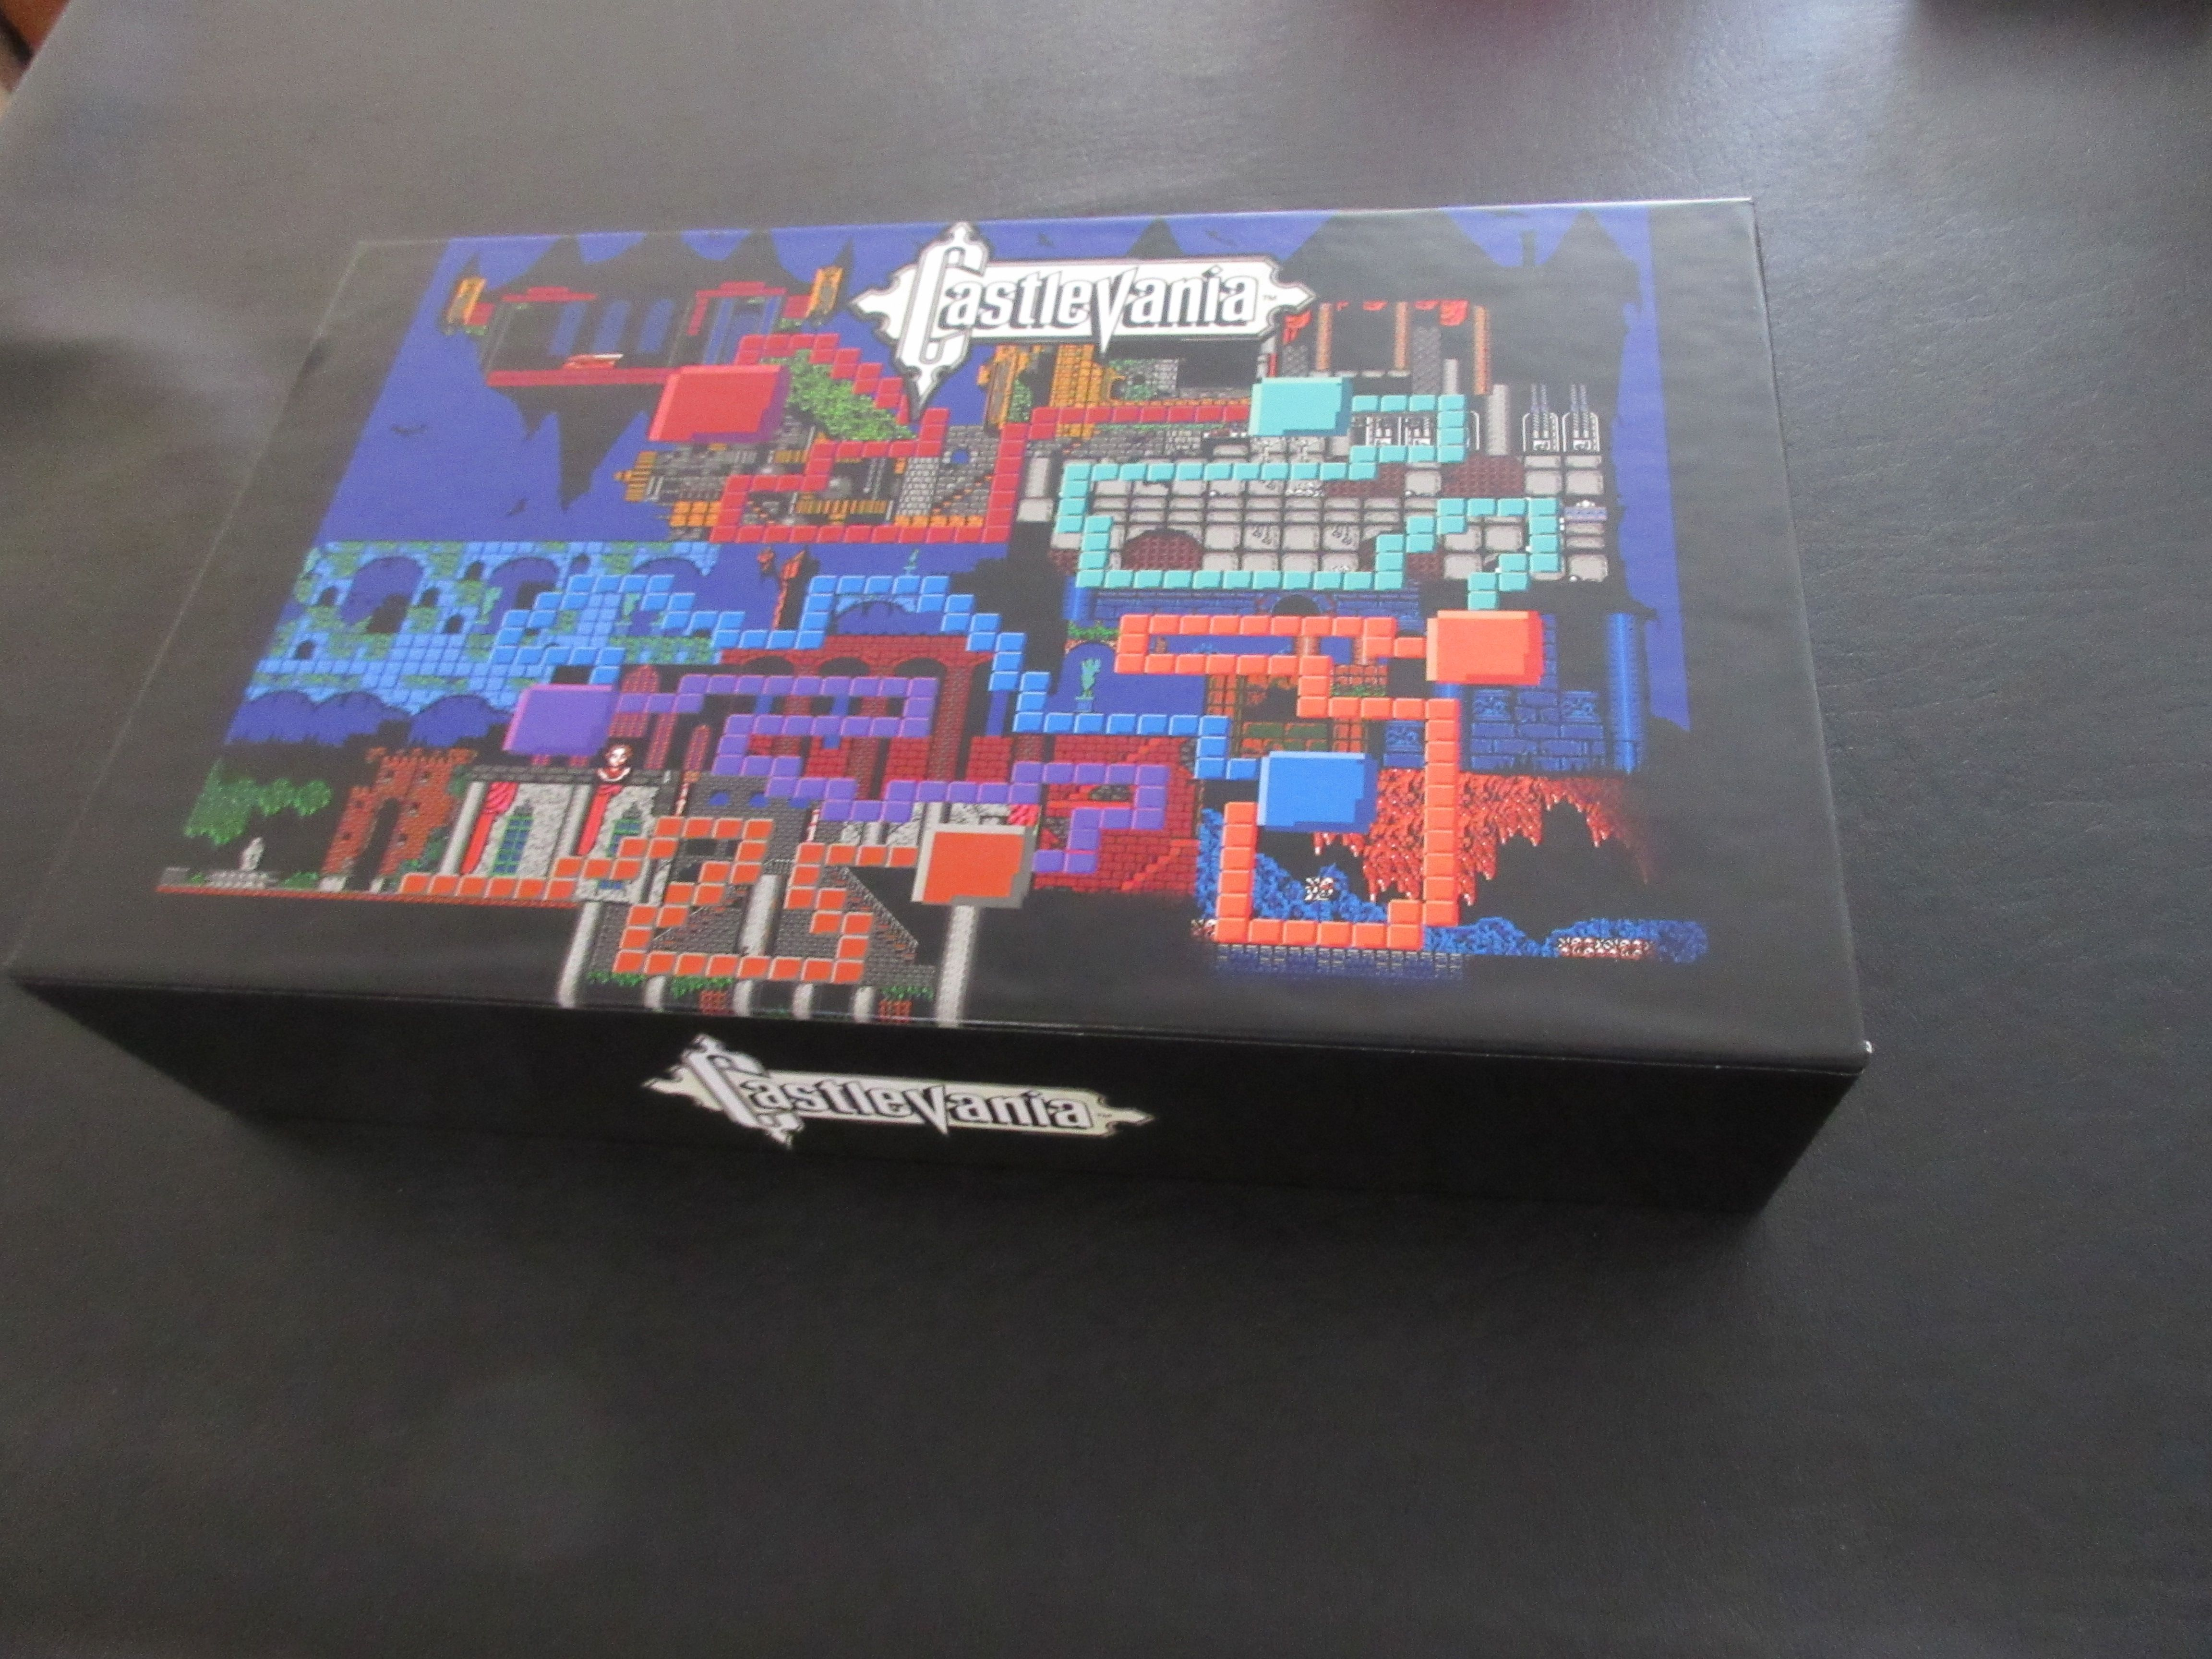 Castlevania Nocturne Of The Tabletop Board Games Nocturne Game Based